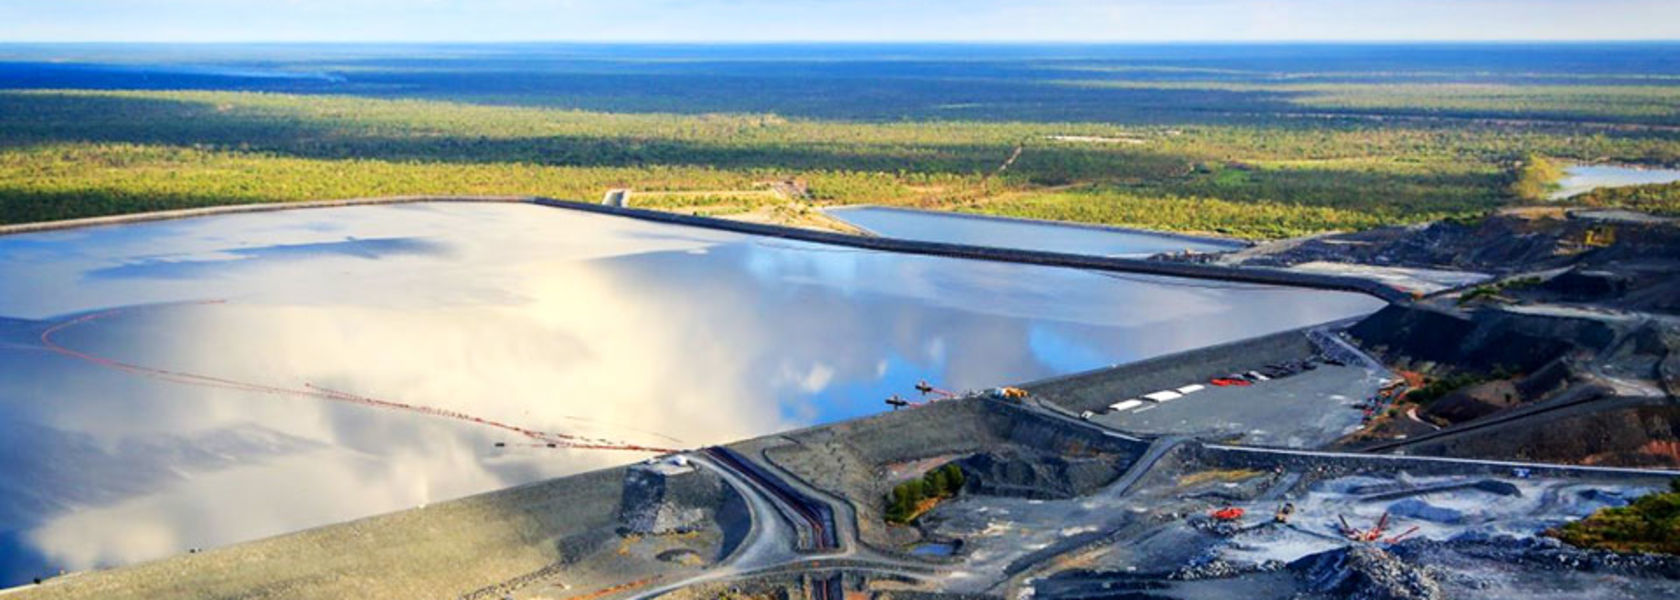 Rio Tinto to bolster tailings management after Vale incident